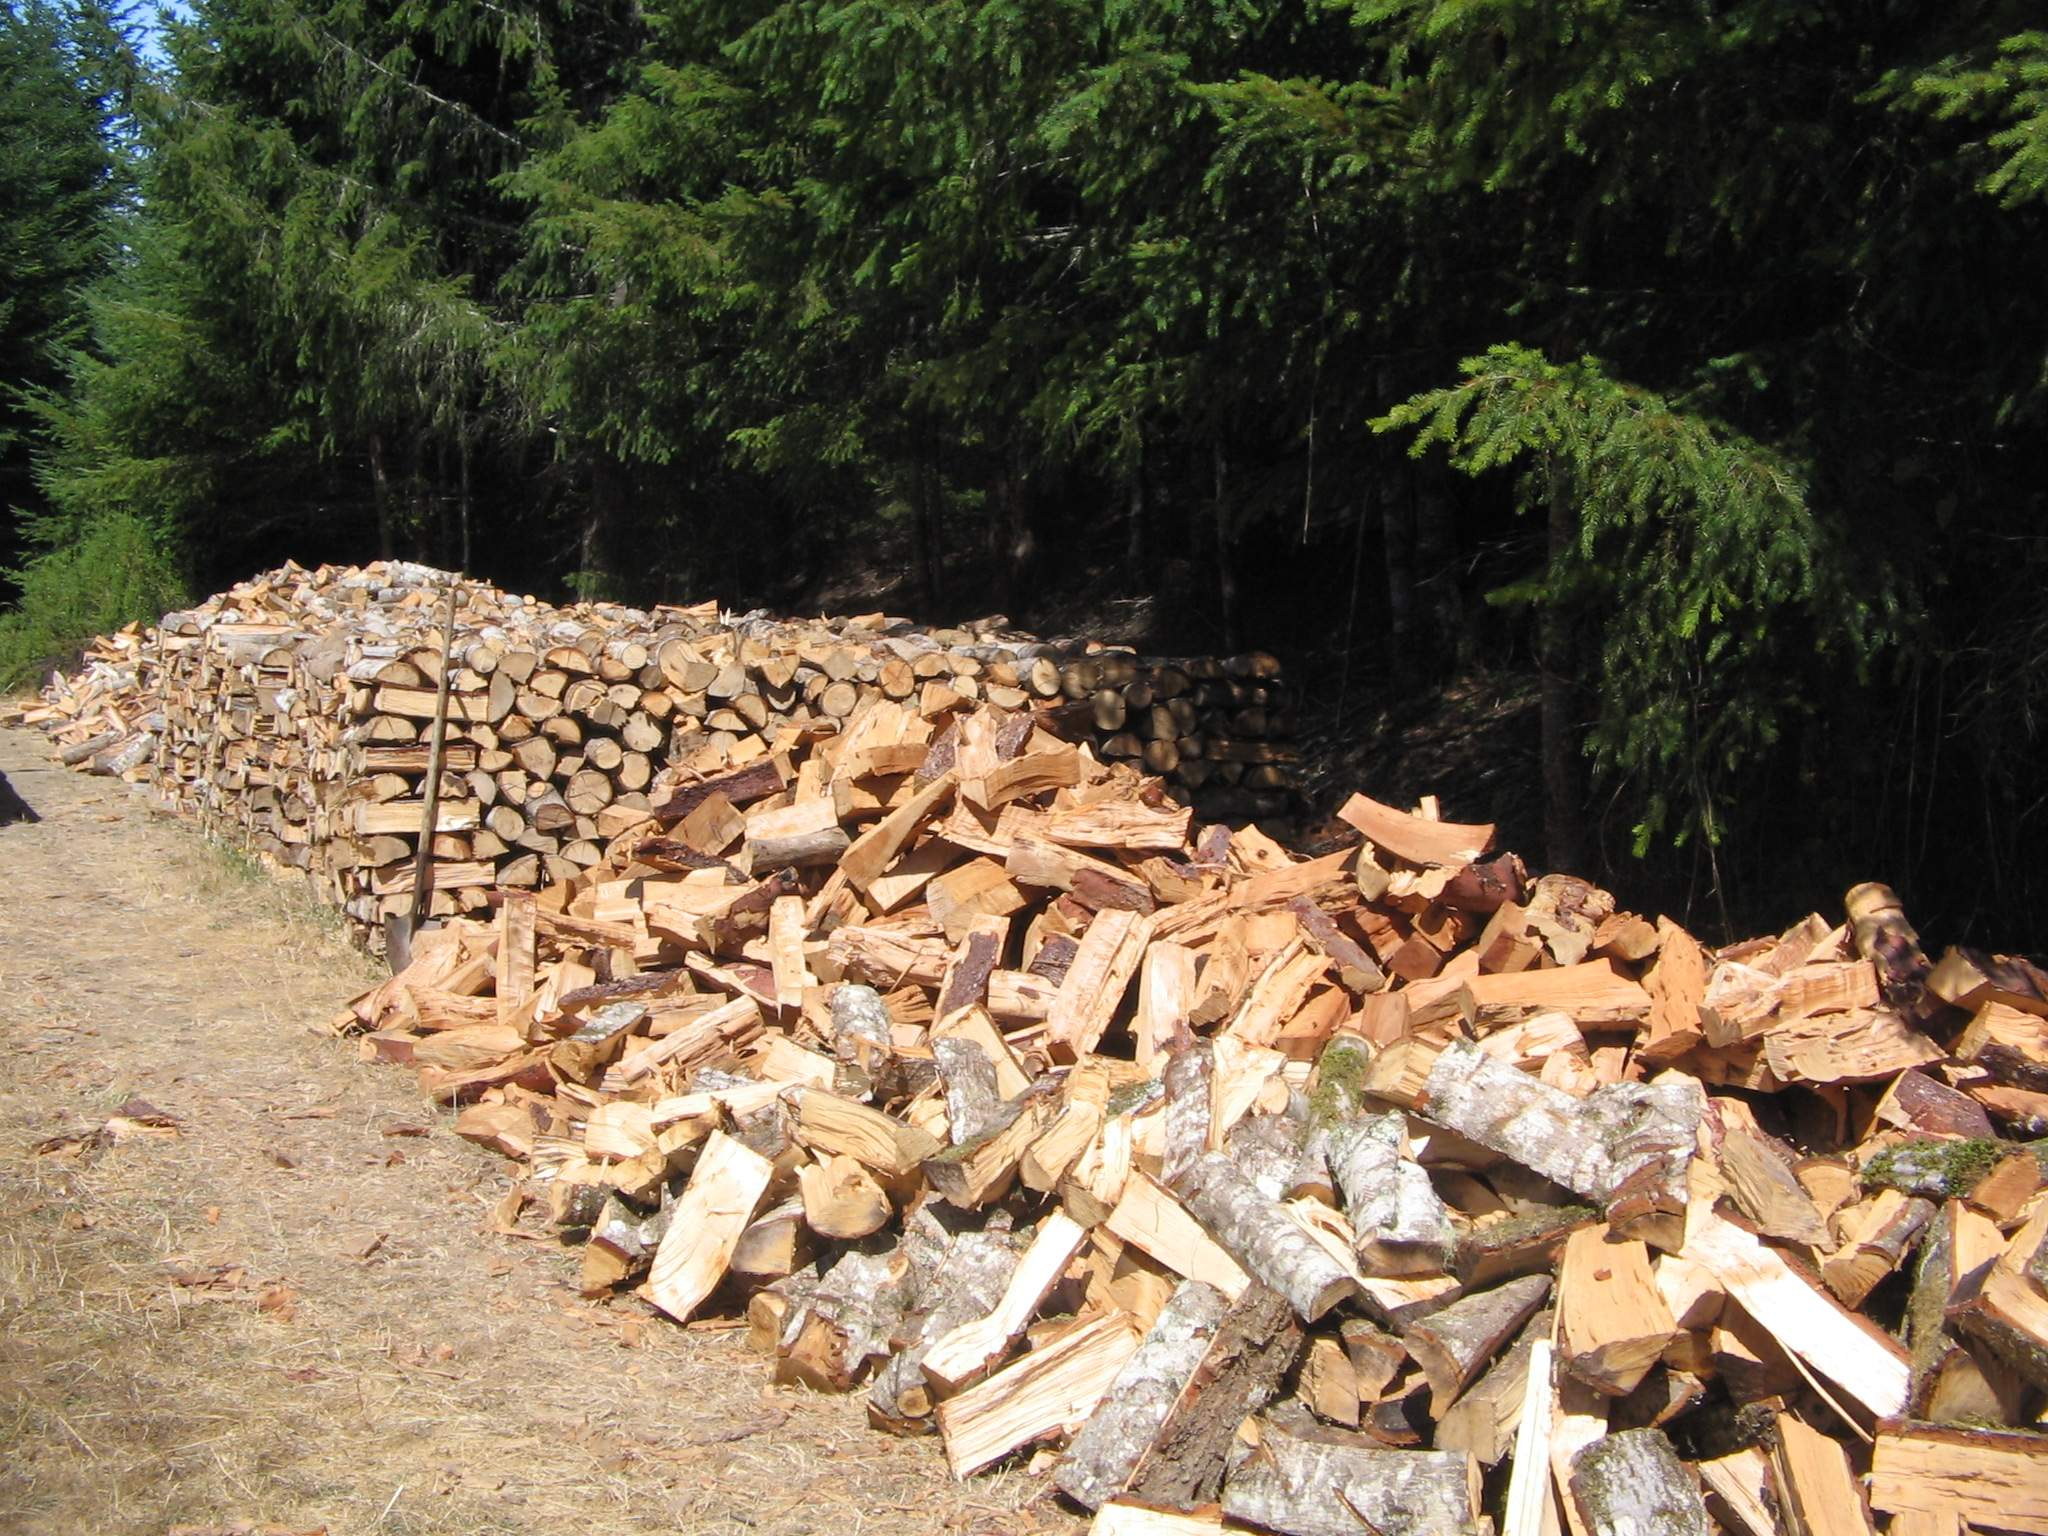 Firewood as a practical wood biofuel and energy source